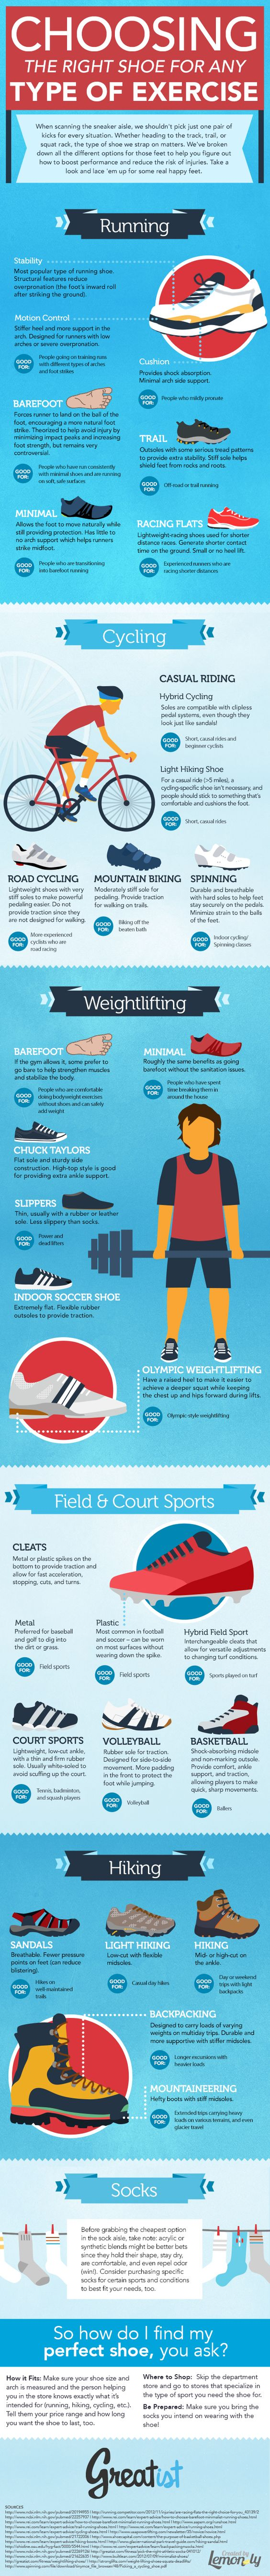 Choosing the Right Shoe for Any Type of Exercise: